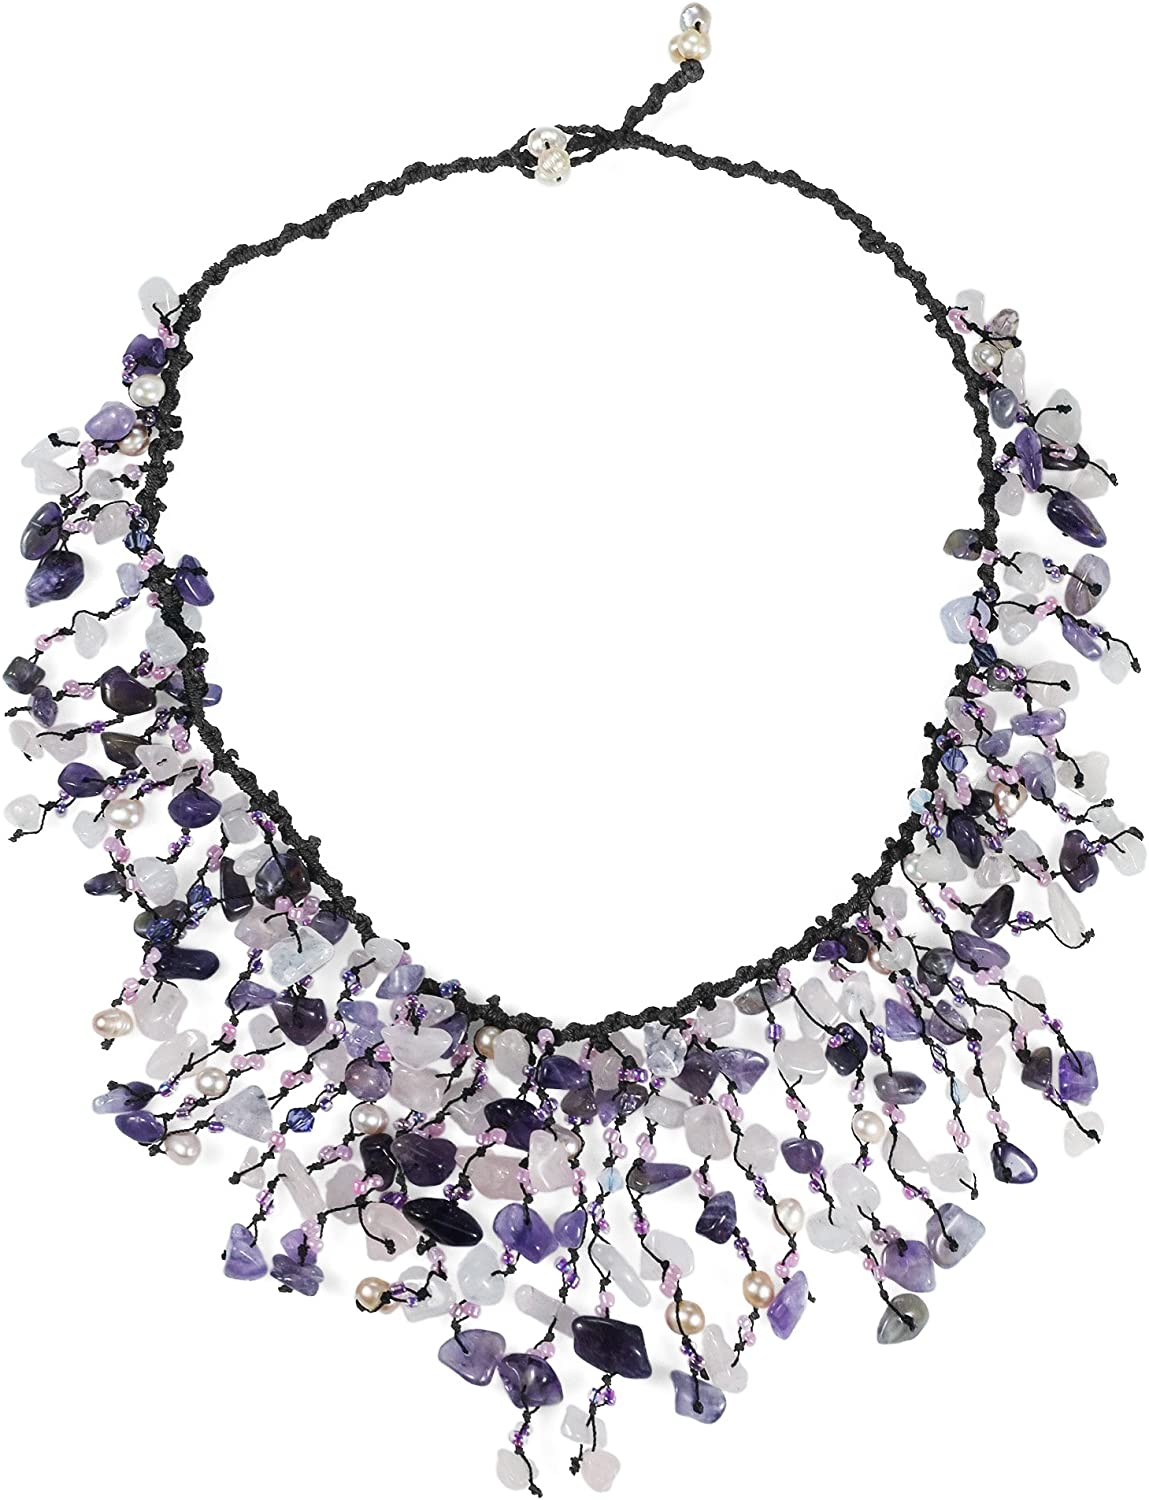 AeraVida Waterfall 4 years warranty Simulated Amethyst Freshwater Pear Cultured Easy-to-use